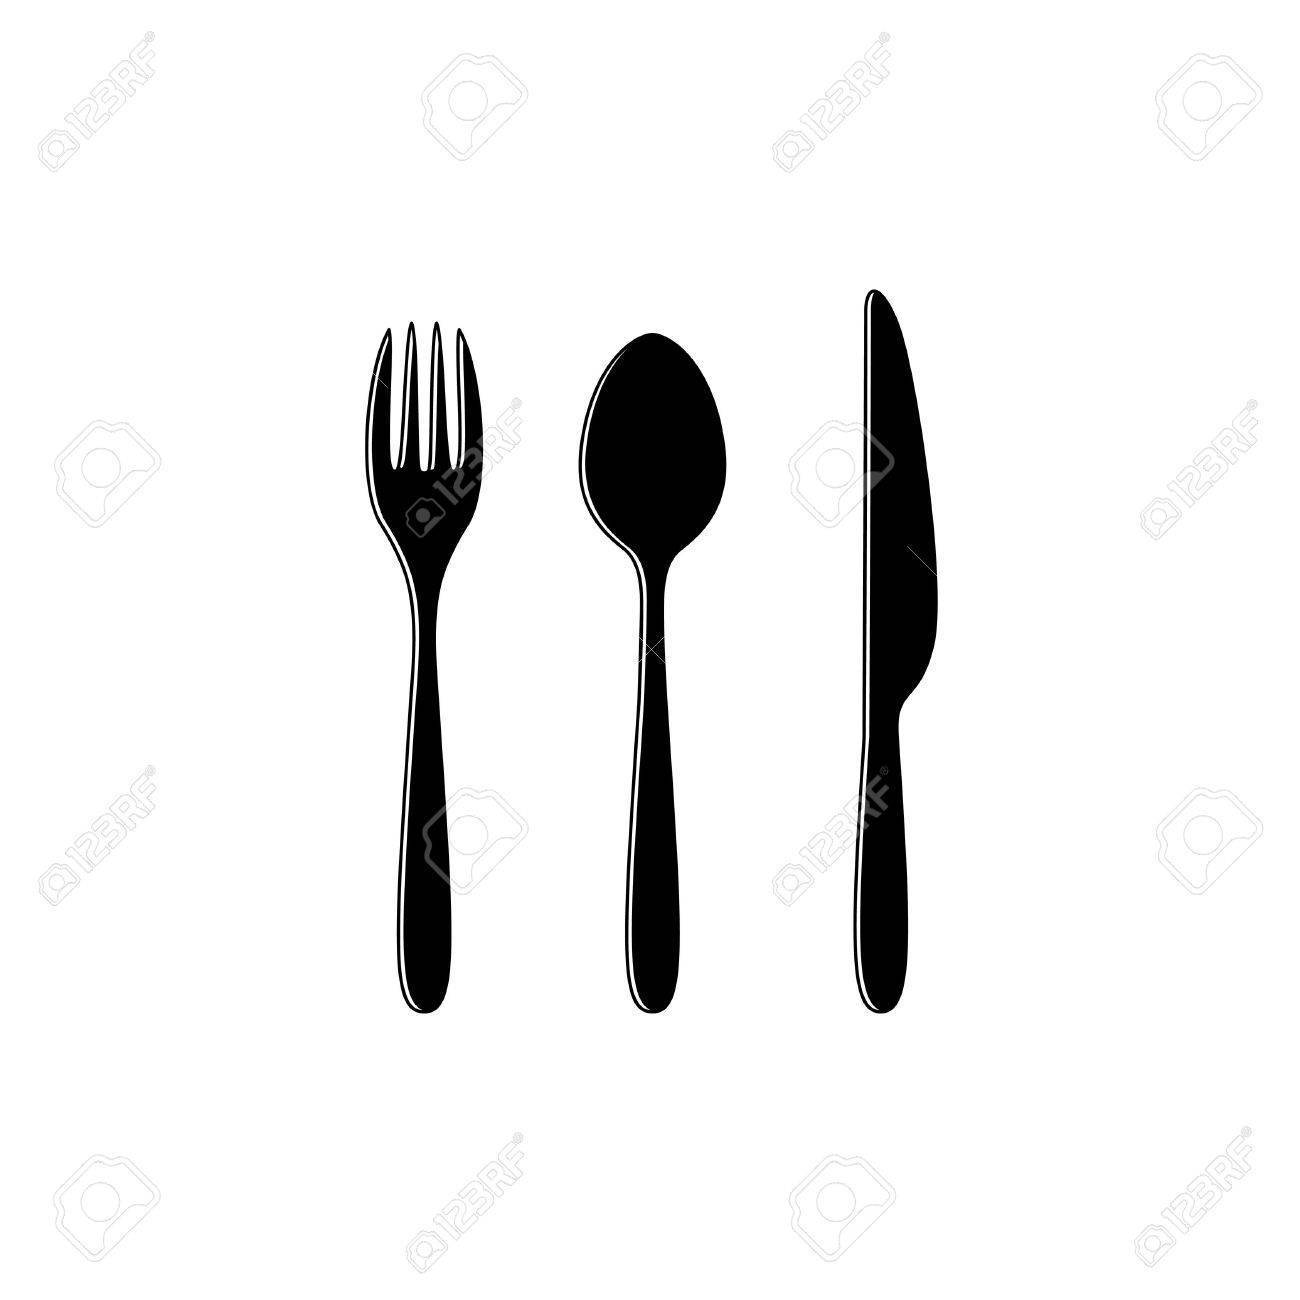 Fork Silhouette